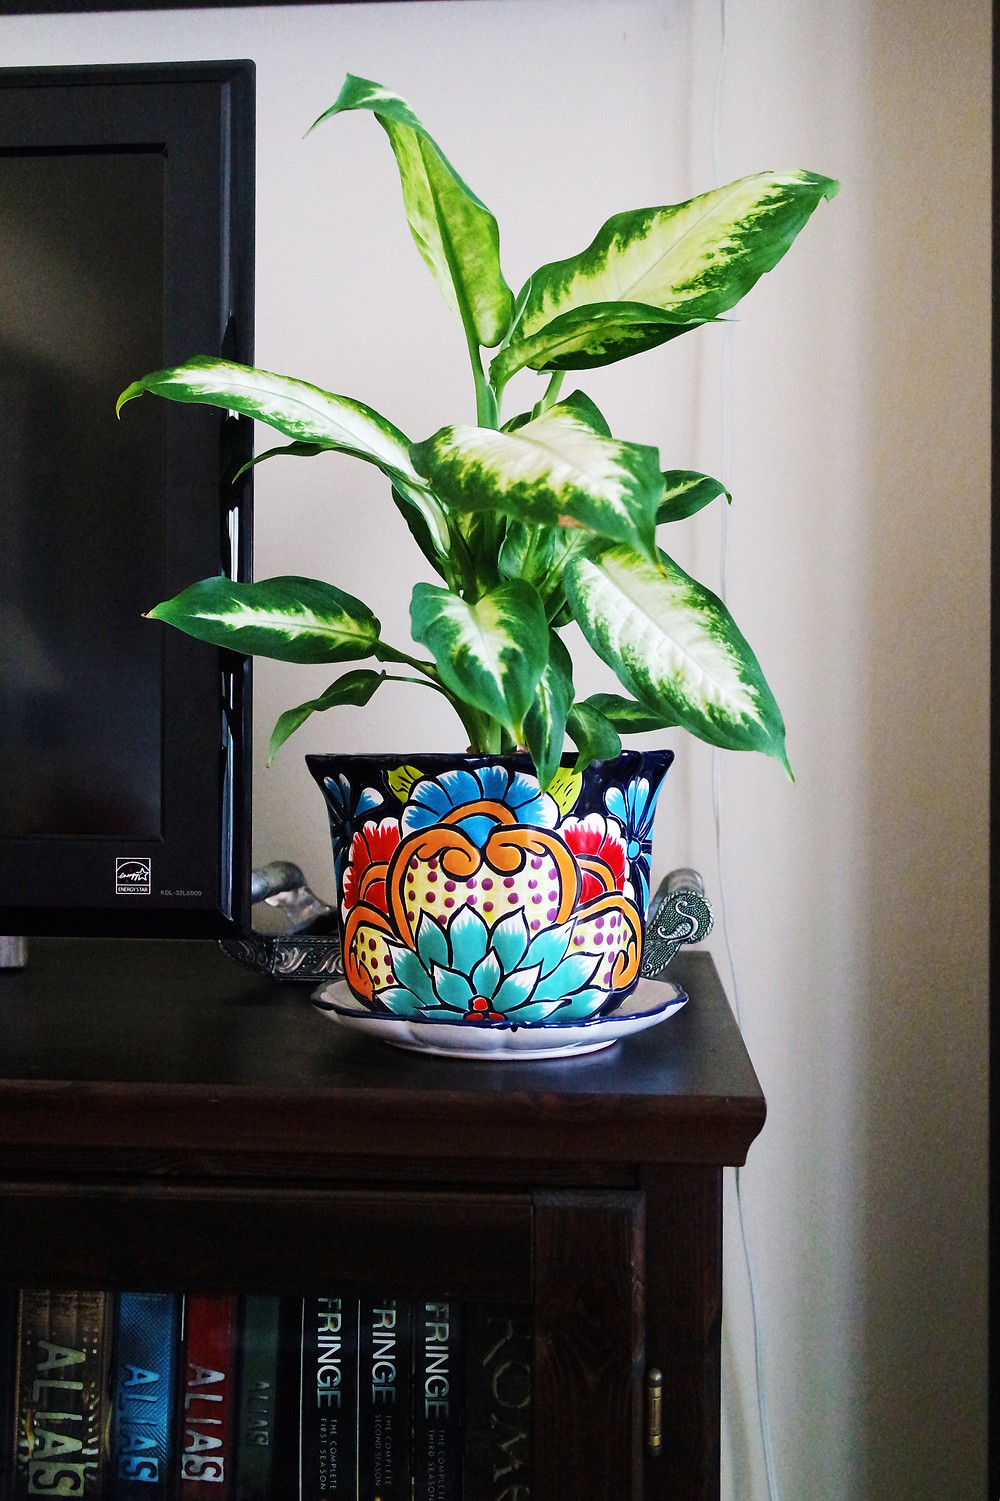 Diffenbachia Plant in a colorful painted pot sitting on the corner of a wooden TV stand.